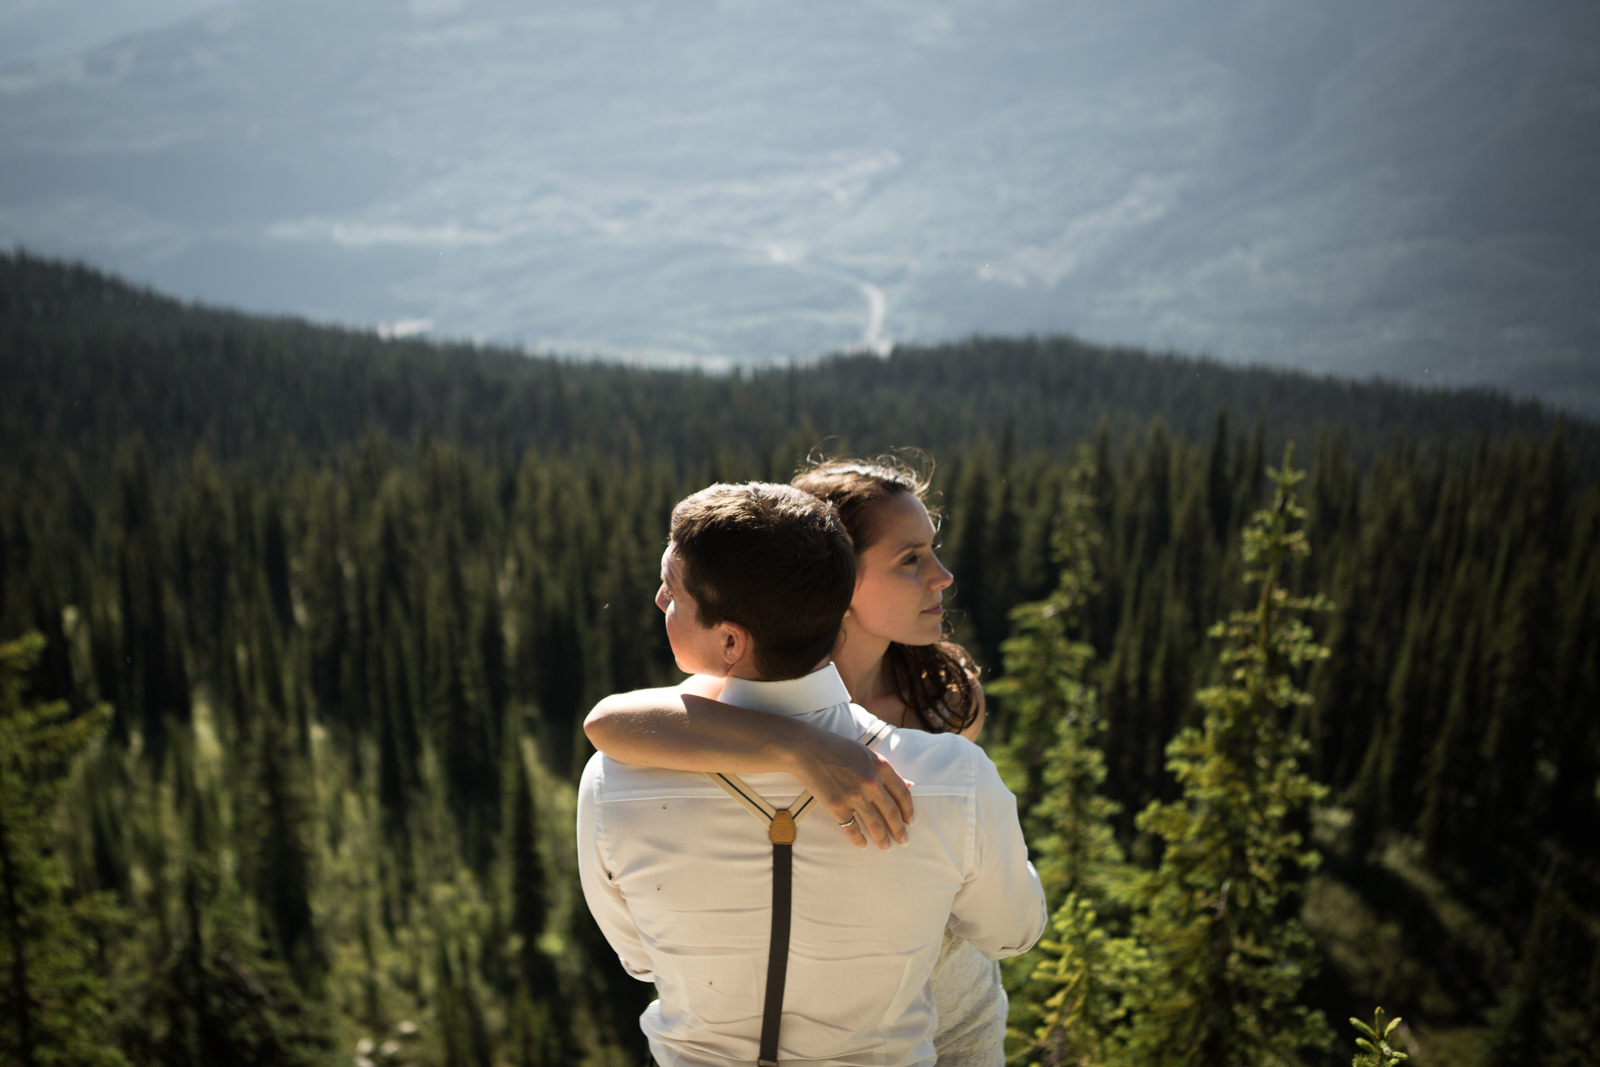 62Andrew_Pavlidis_Photography_Jess_and_Tristan_Revelstoke_Elopement_Calgary_Wedding_Photographer-9083